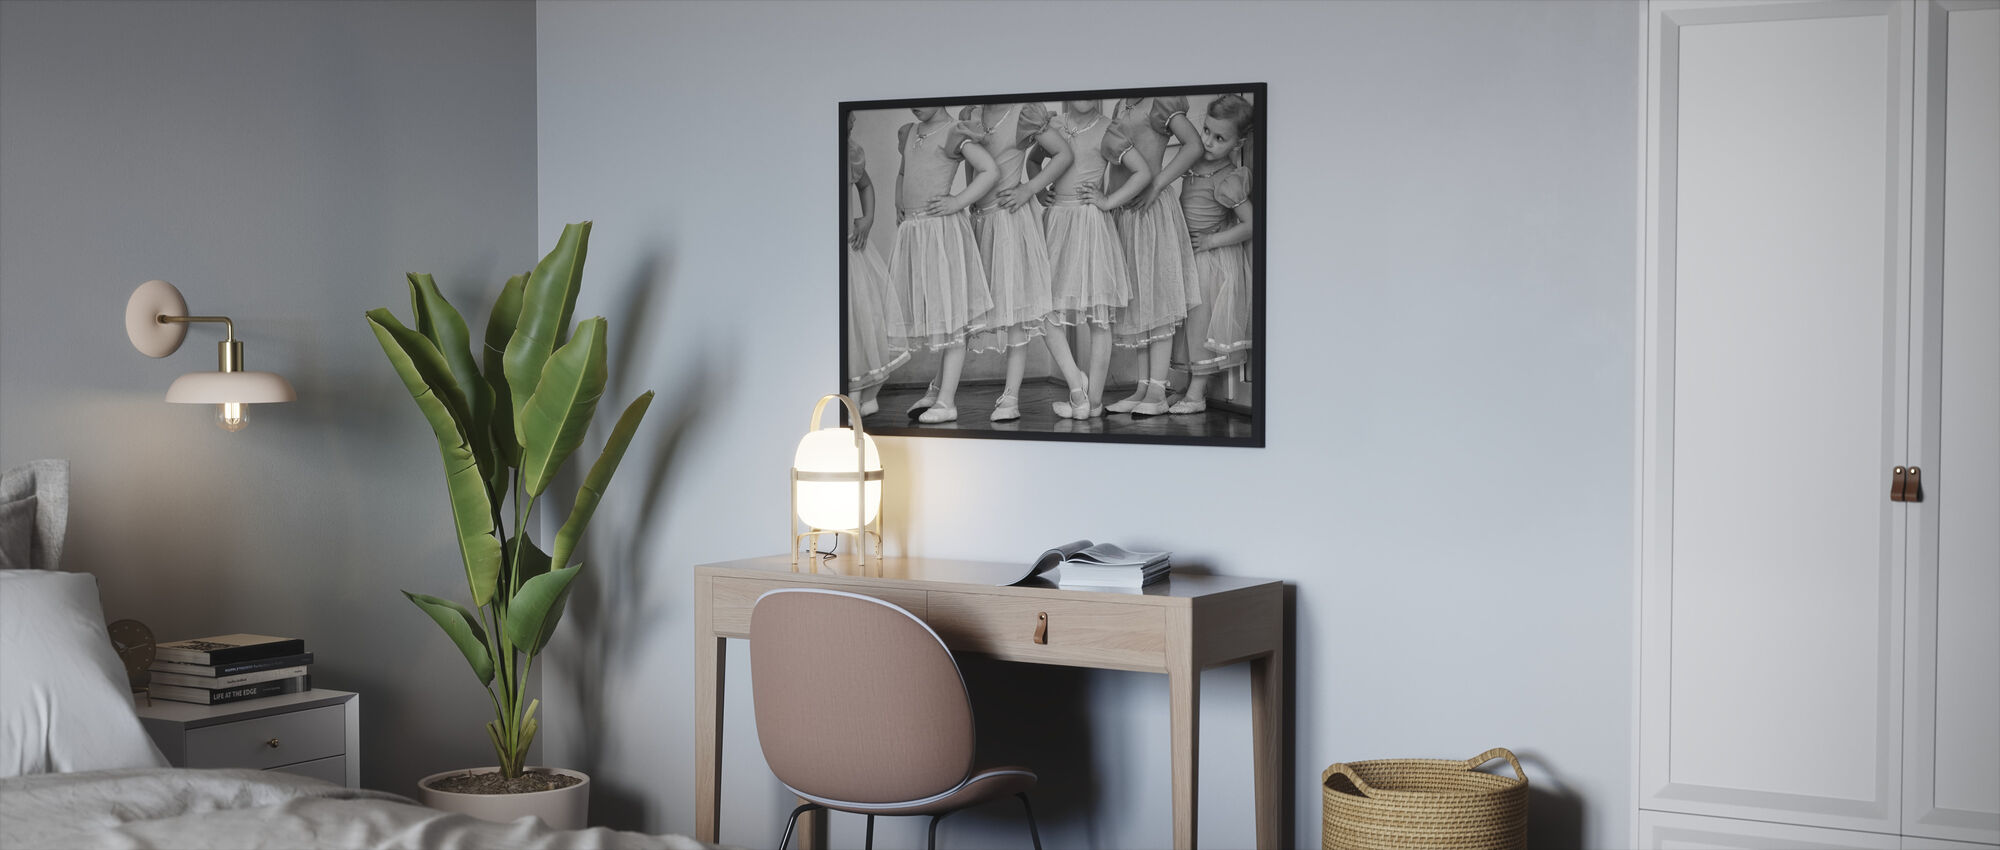 Ballerina - Framed print - Bedroom